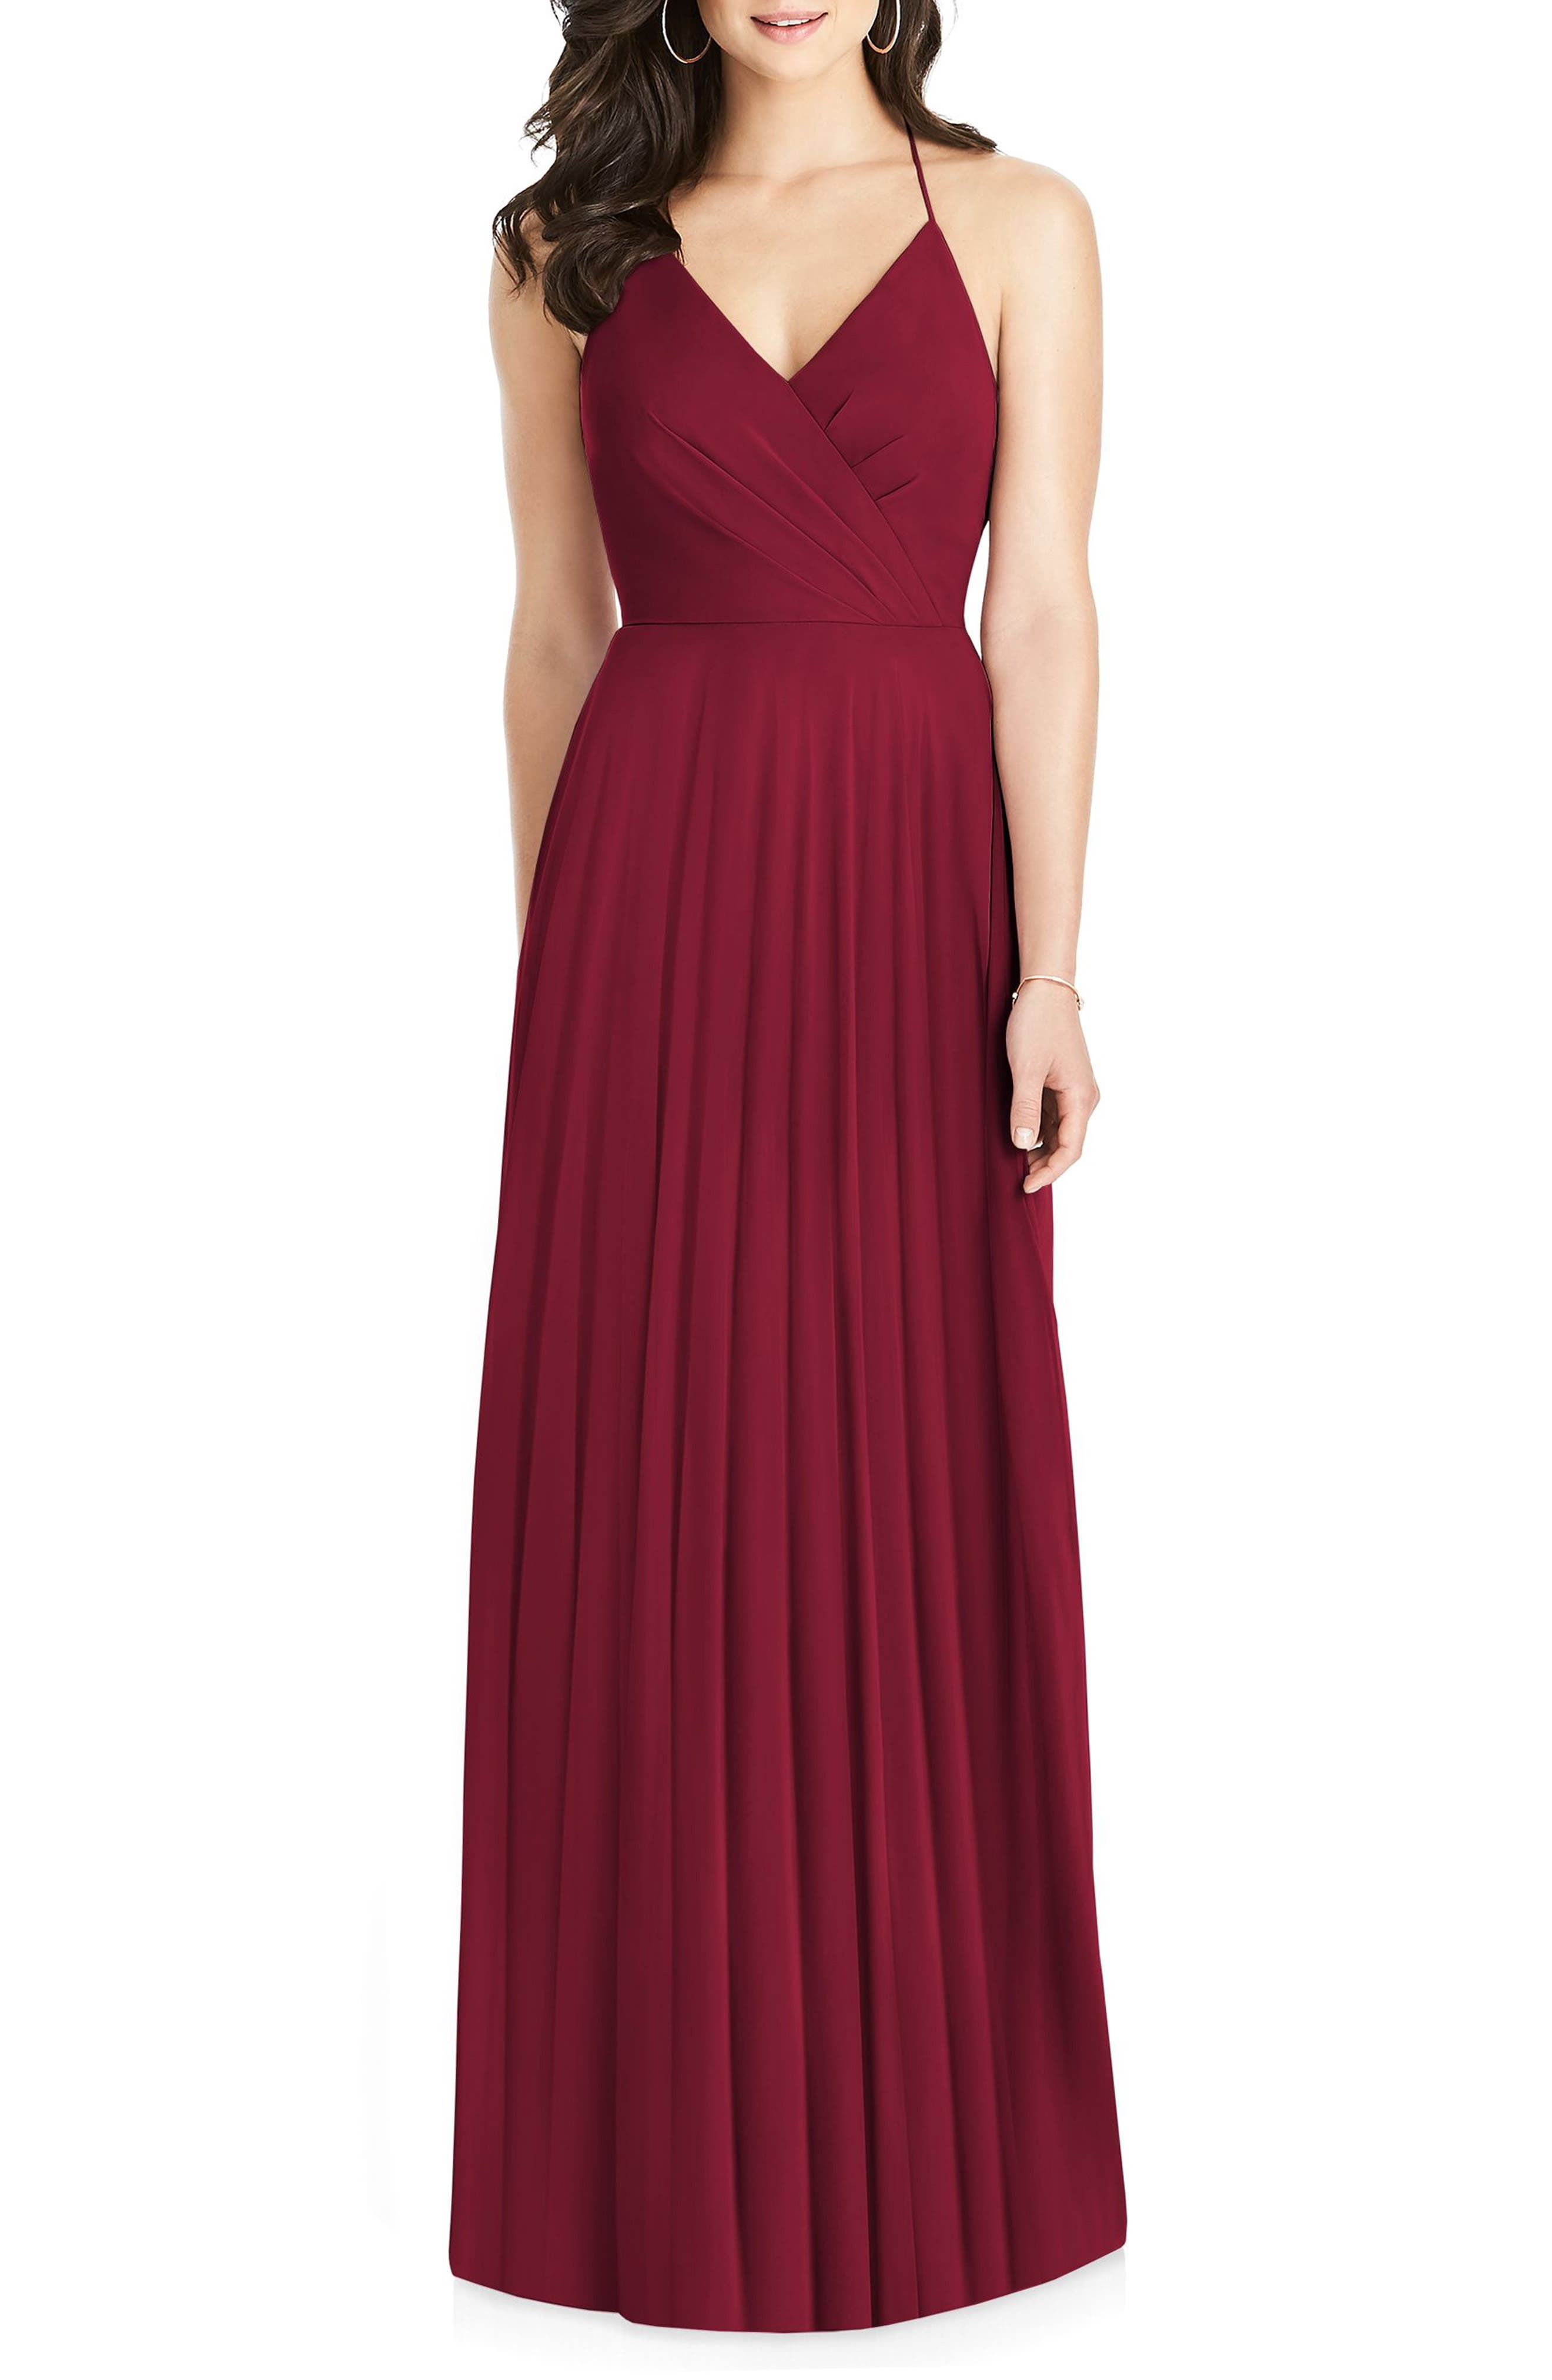 Dessy Collection Ruffle Back Chiffon Gown, Burgundy